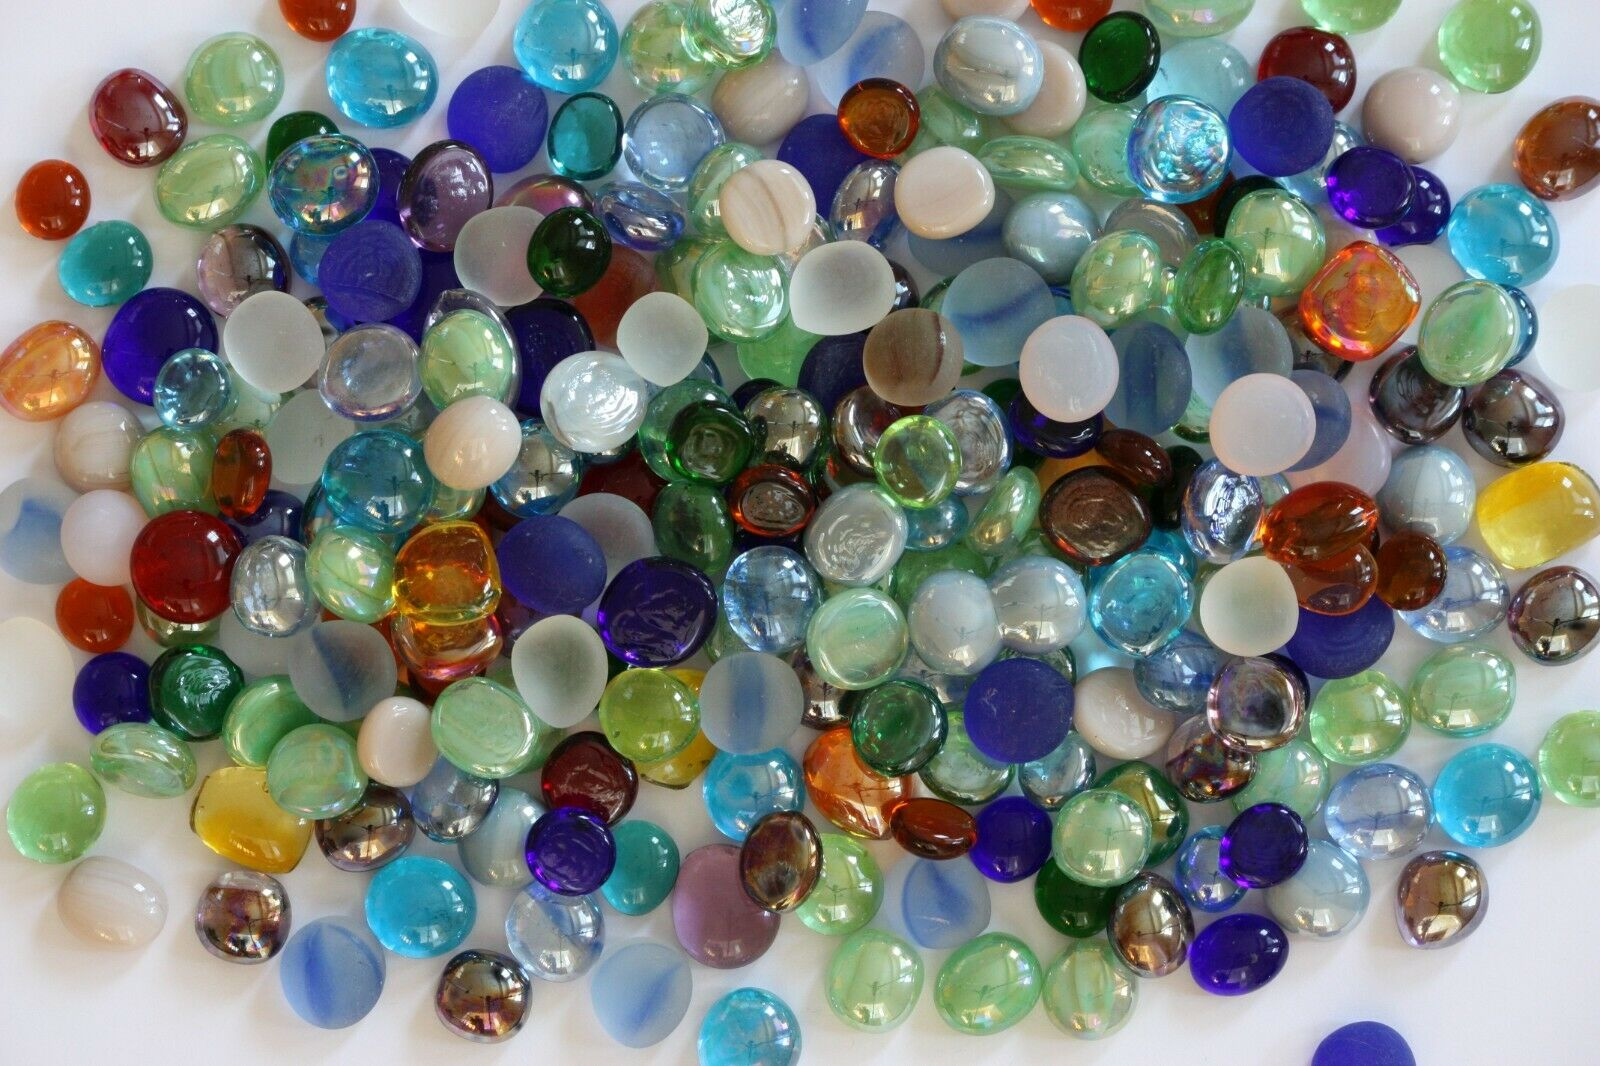 как выглядит 550 Pcs Mixed Color Glass Gems, Pebbles, Mosaic Tiles, Nuggets фото